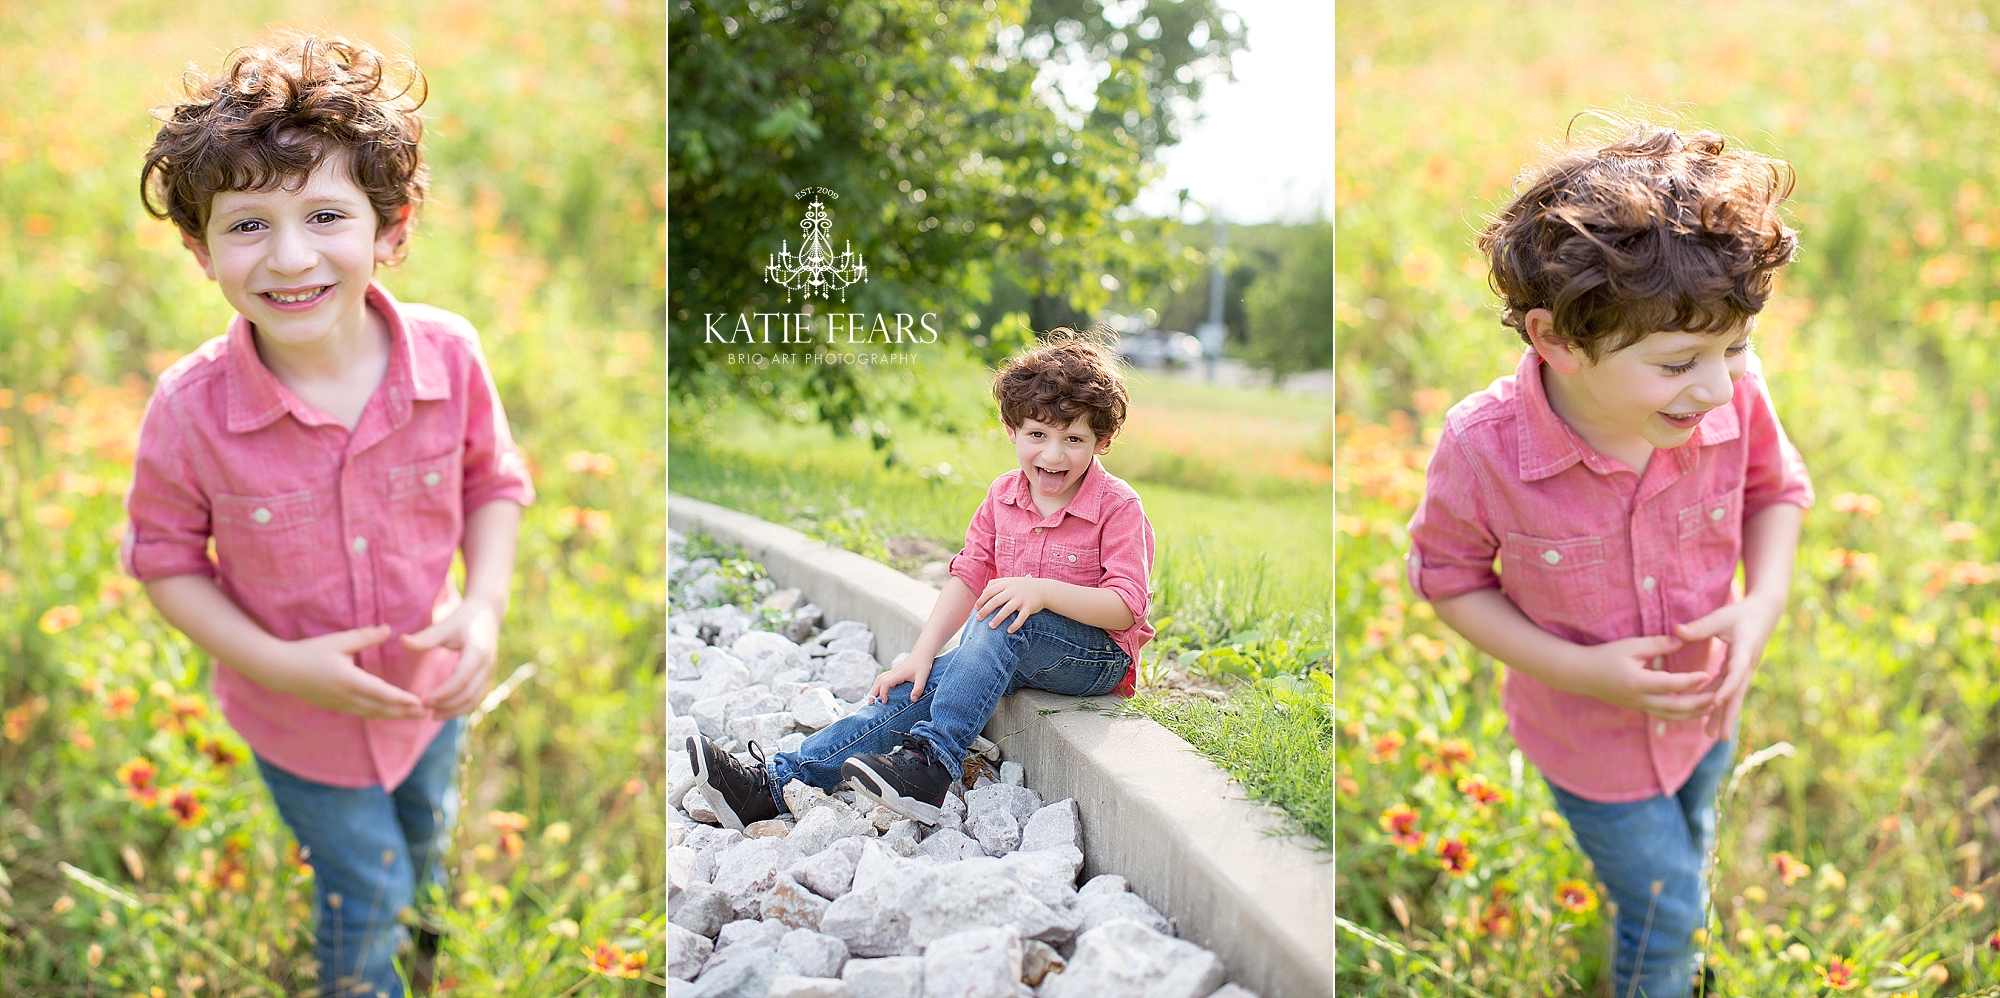 Baby Photos,Childrens Photographer in MN,Family Photos,Family portrait photographer Katie Fears,Kid Portraits,Maternity Photos MN,Minneapolis Family photography,Minneapolis Potrait Studio Brio Art,Professional Family Portraits,St. Paul Child Portraits,Studio Photographer Katie Fears,TX,Texas,austin,